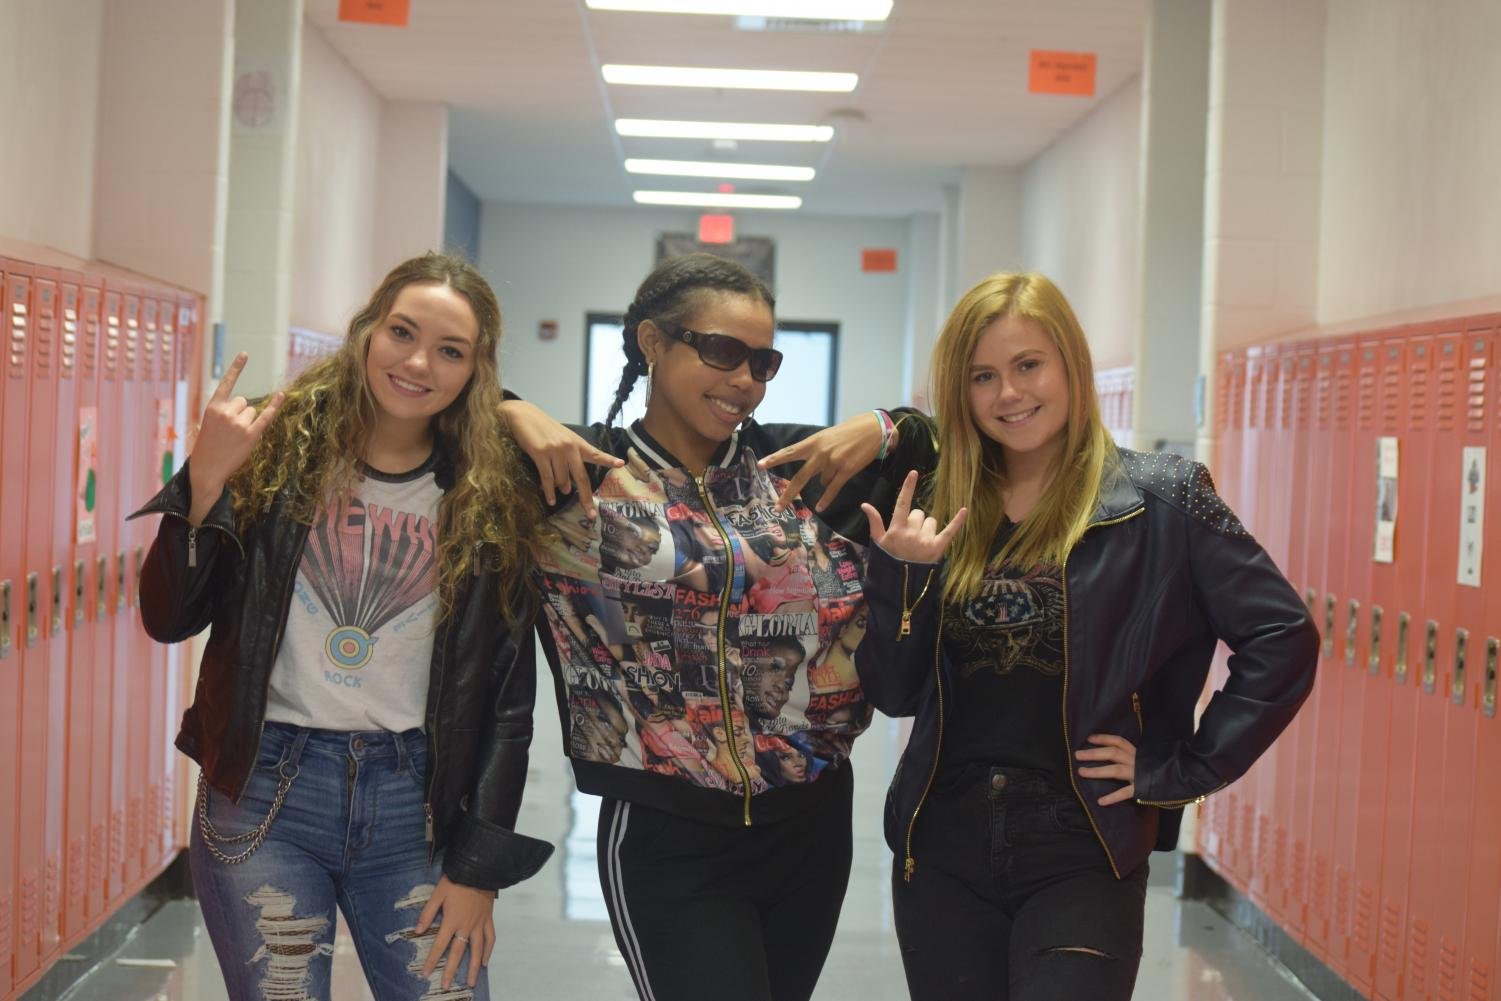 Juniors+pose+together+for+a+picture%2C+showing+their+homecoming+spirit.+